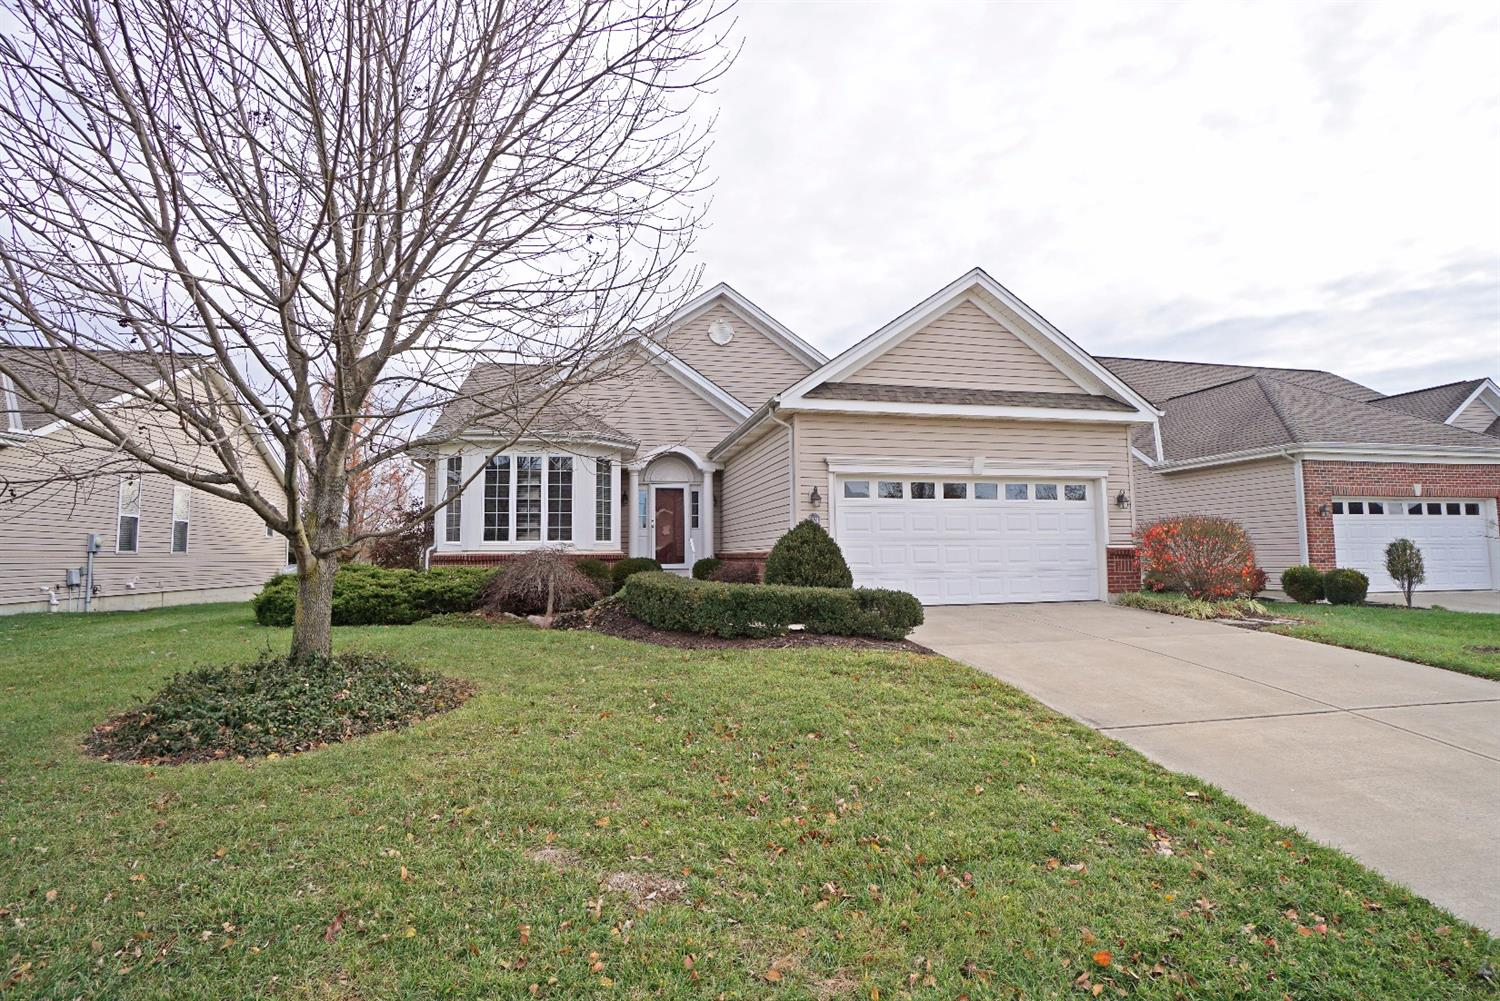 Homes For Sale On Thicket Lane Hamilton Twp Ohio